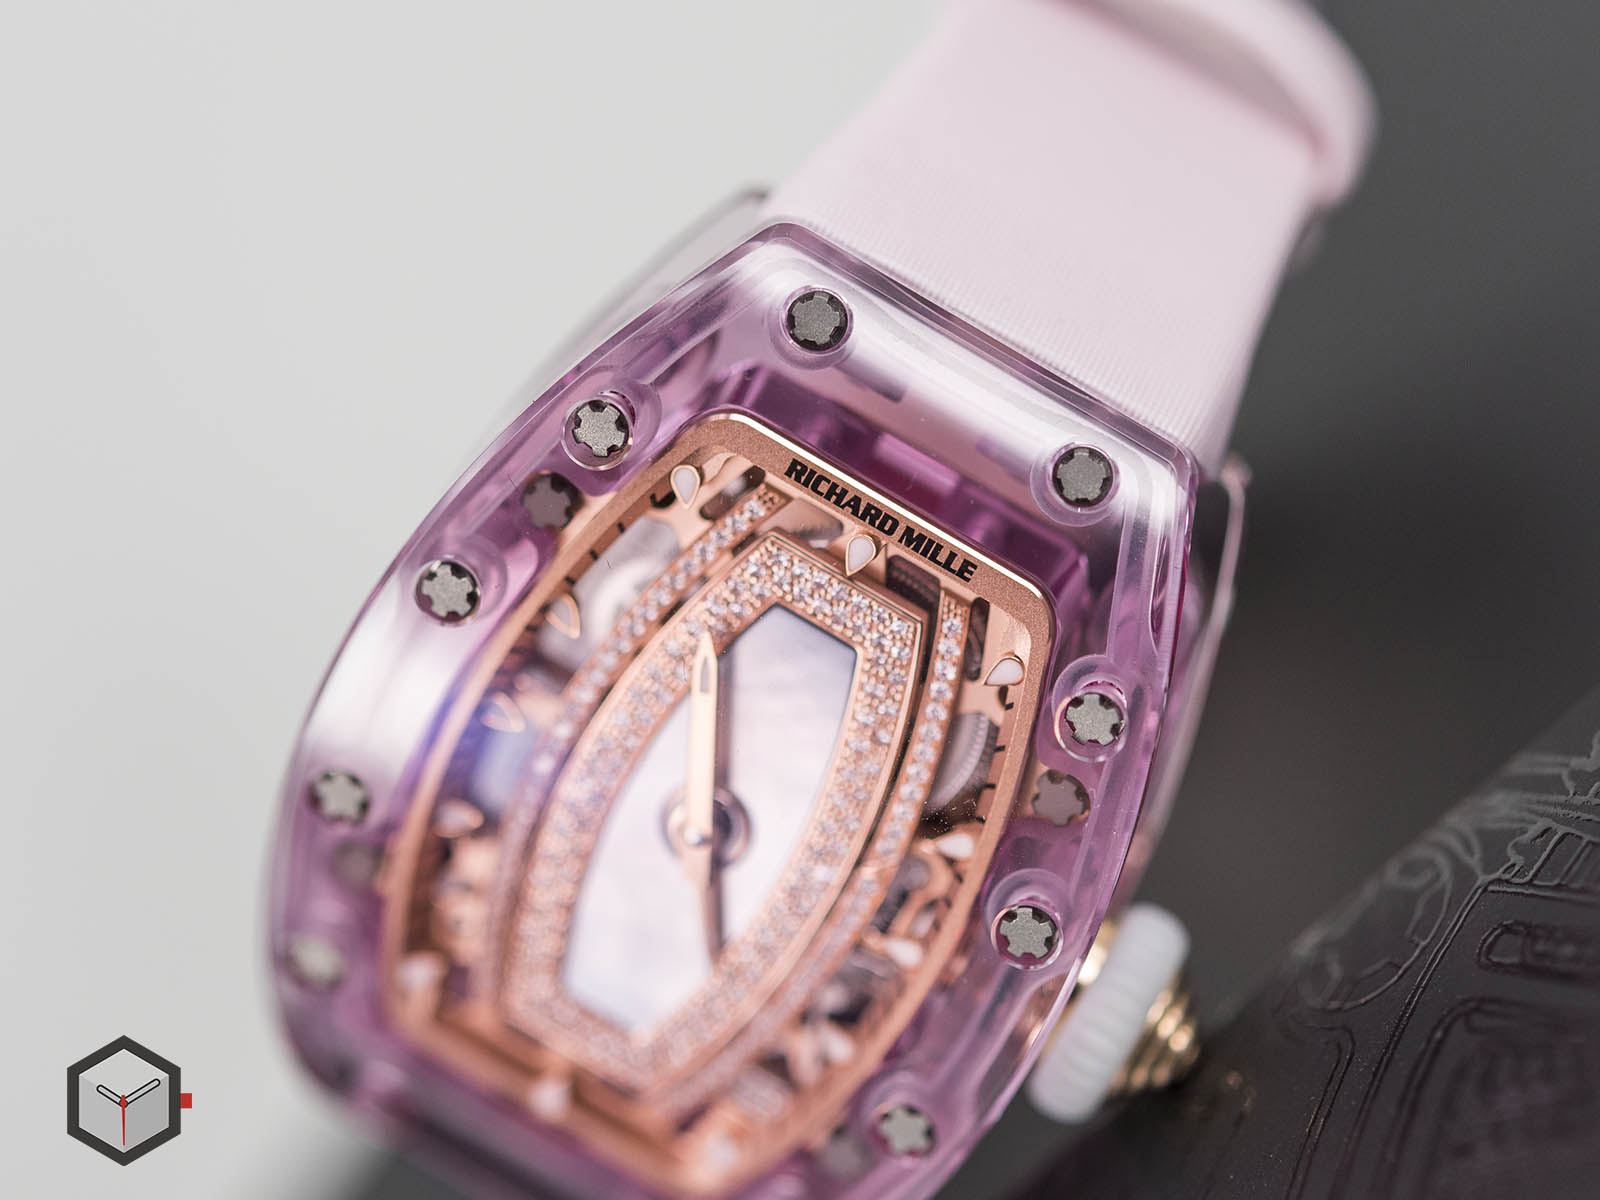 rm-07-02-richard-mille-automatic-pink-lady-sapphire-5.jpg